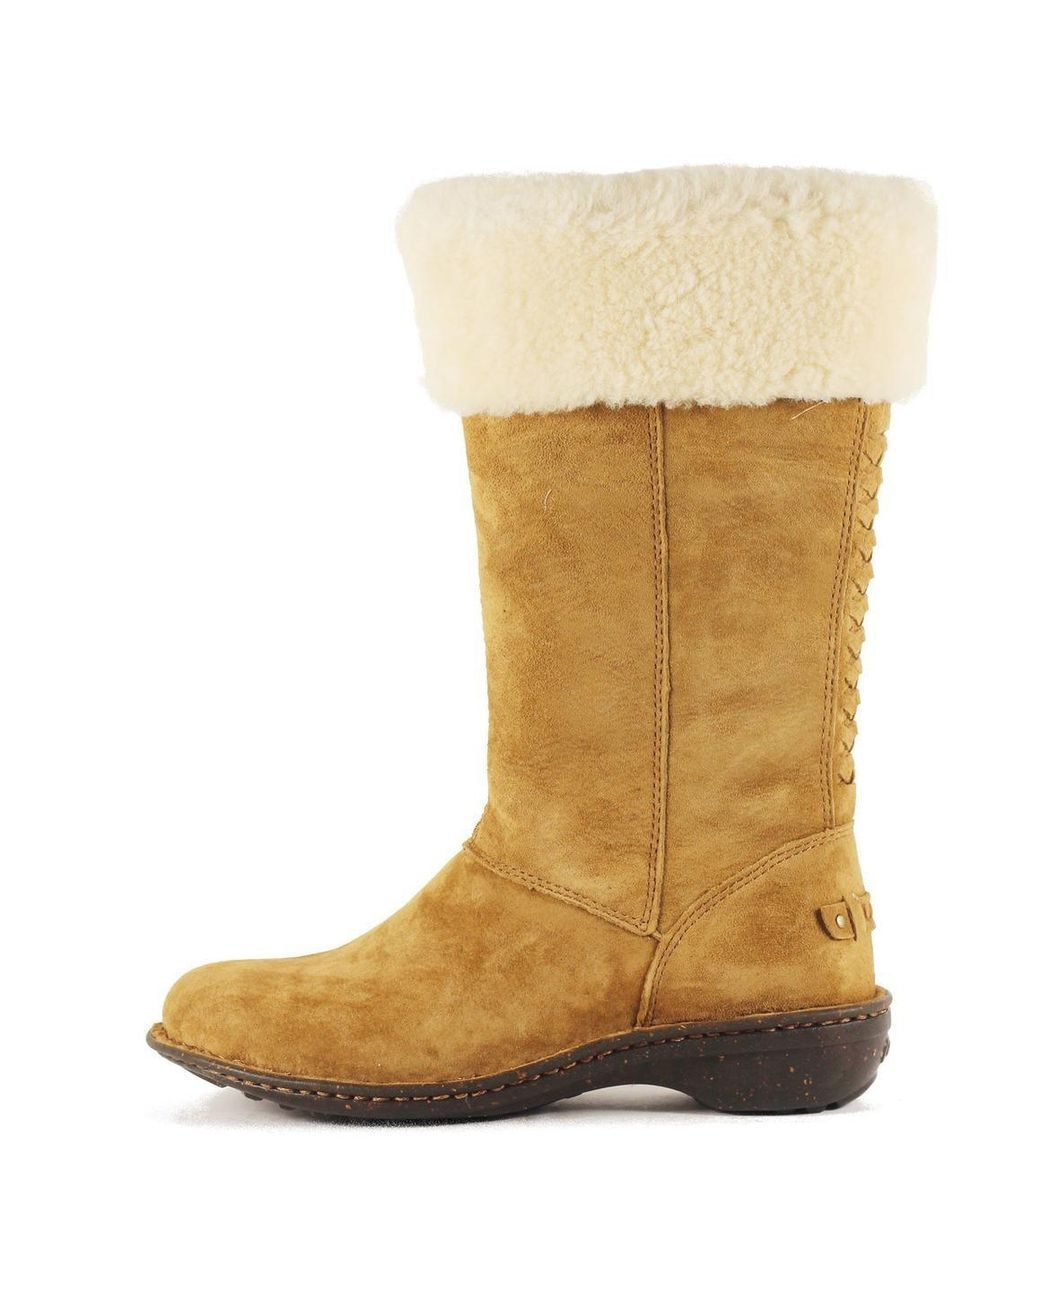 722a42d21a4e Buy Ugg Women's Brown Karyn Chestnut Cuff Sheepskin Boot. Similar products  also available. SALE now on!